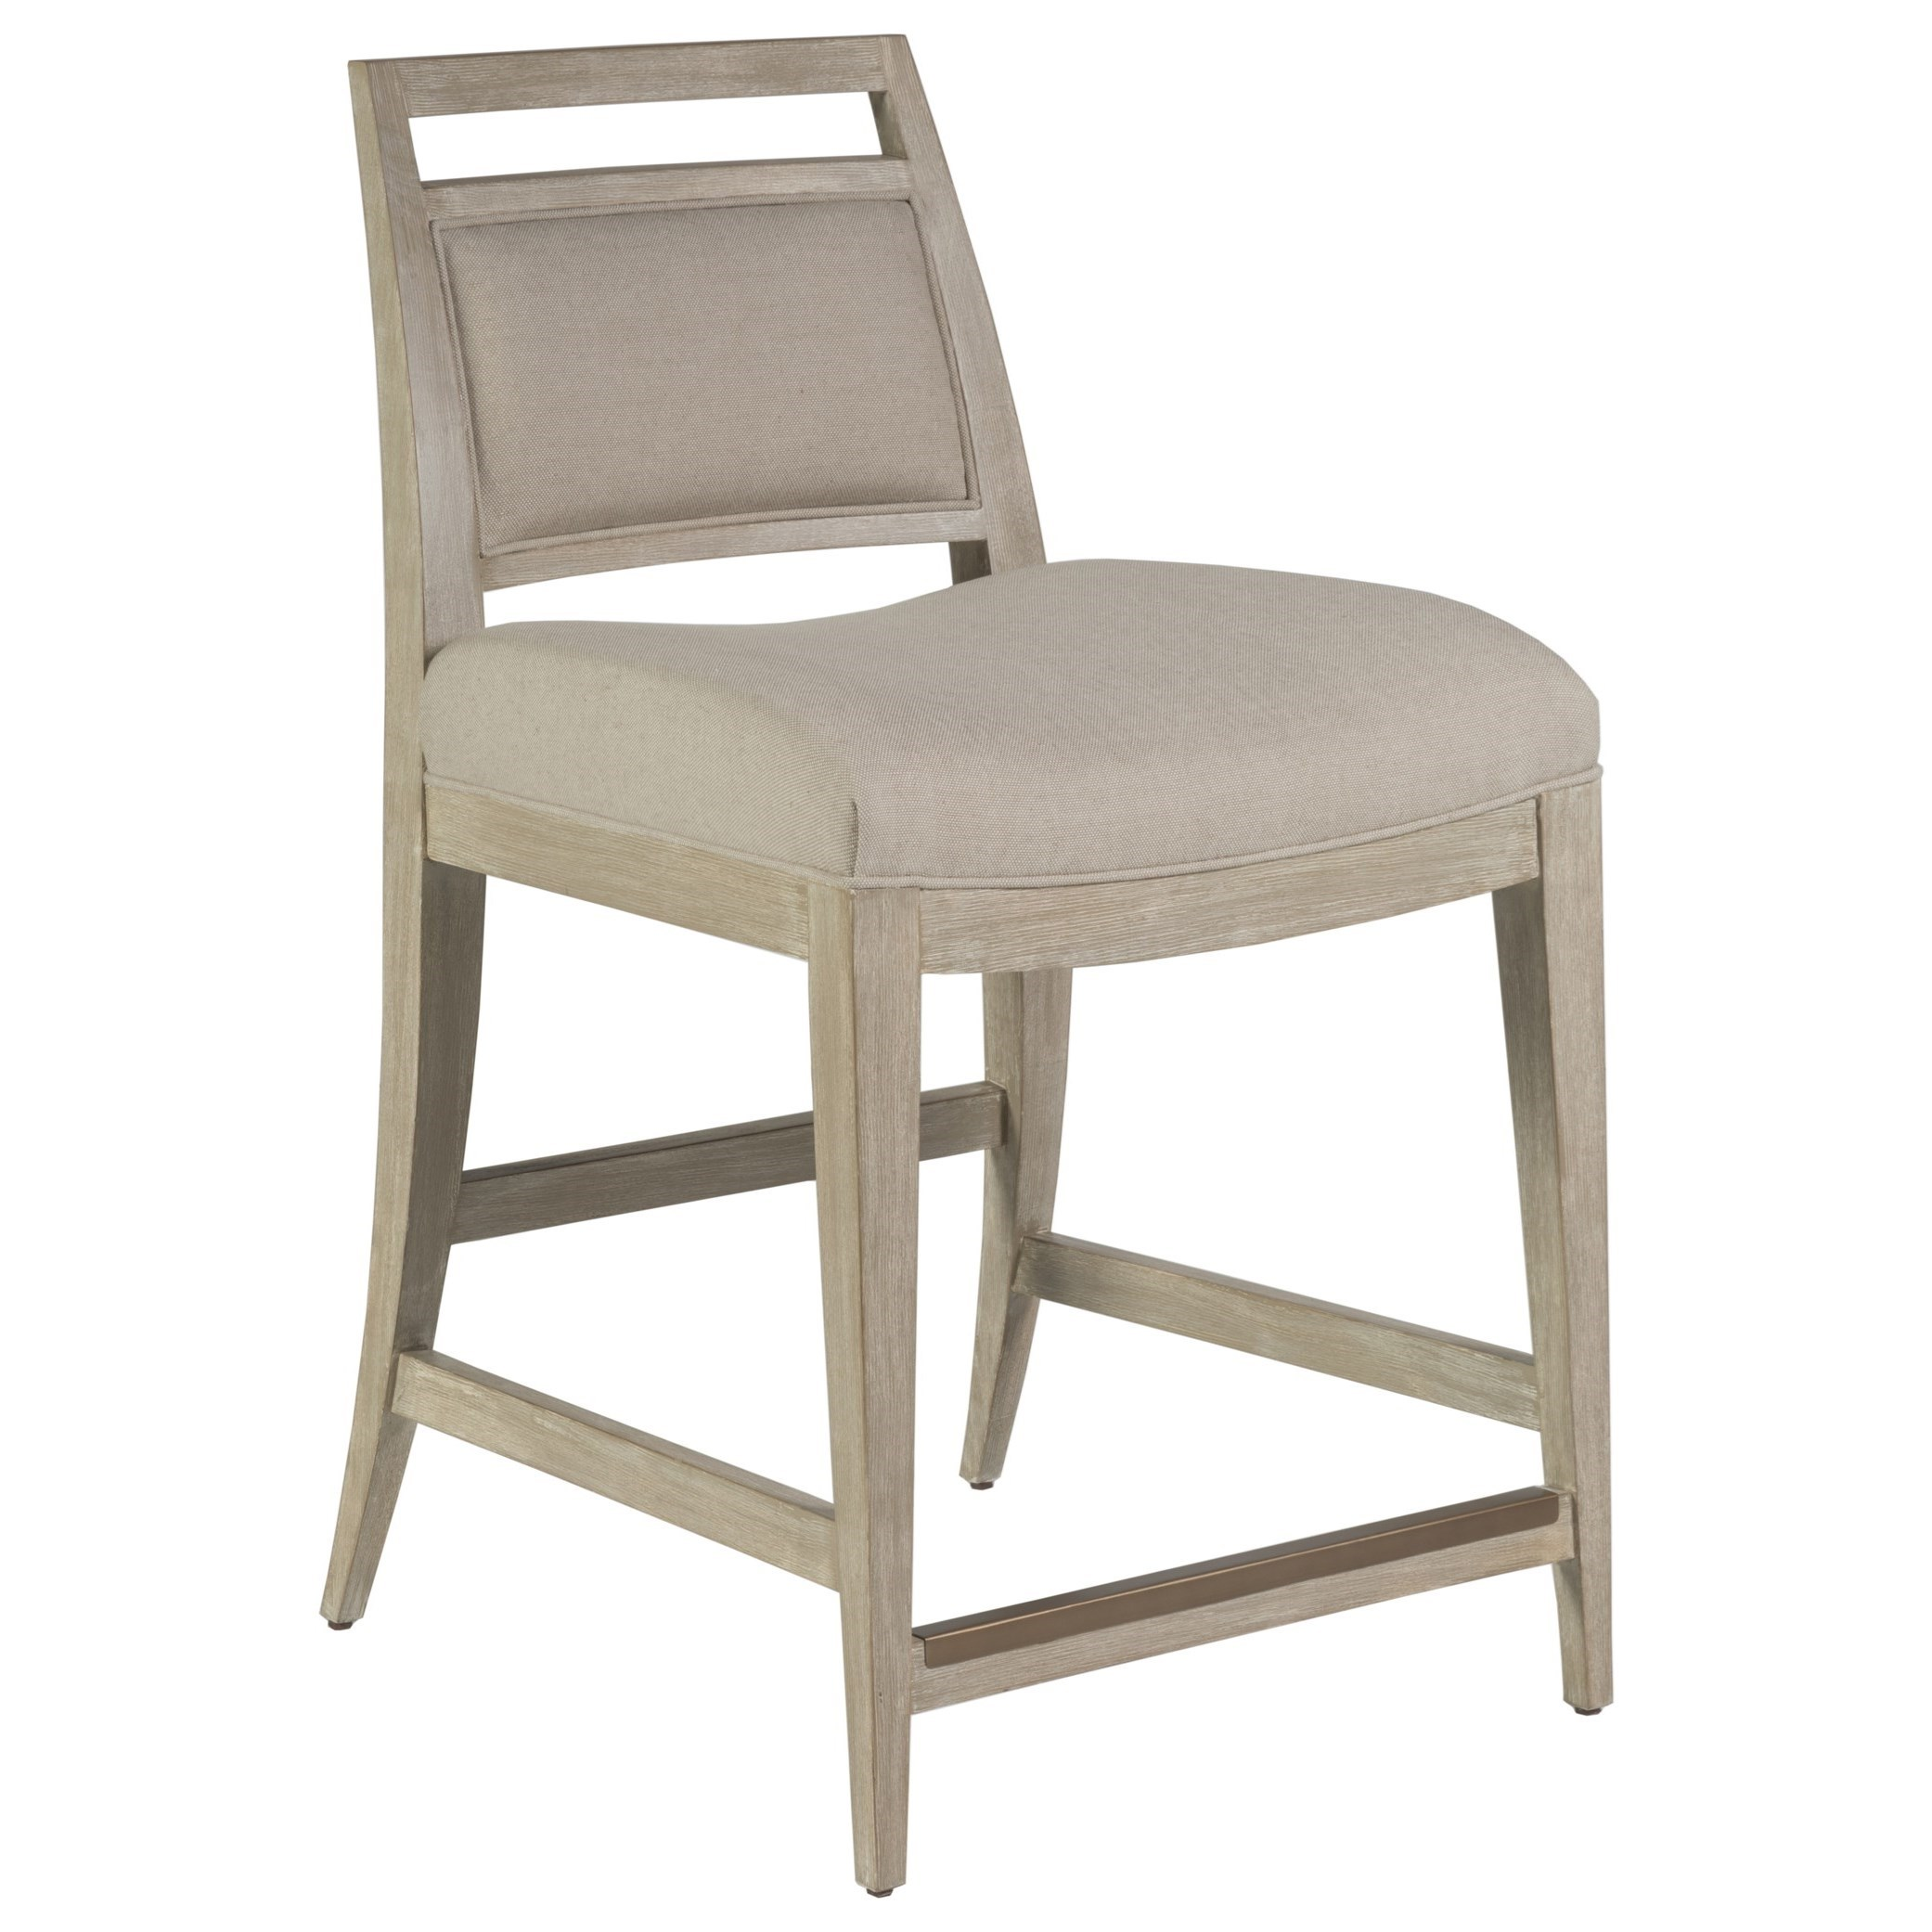 Cohesion Nico Upholstered Counter Stool by Artistica at C. S. Wo & Sons Hawaii